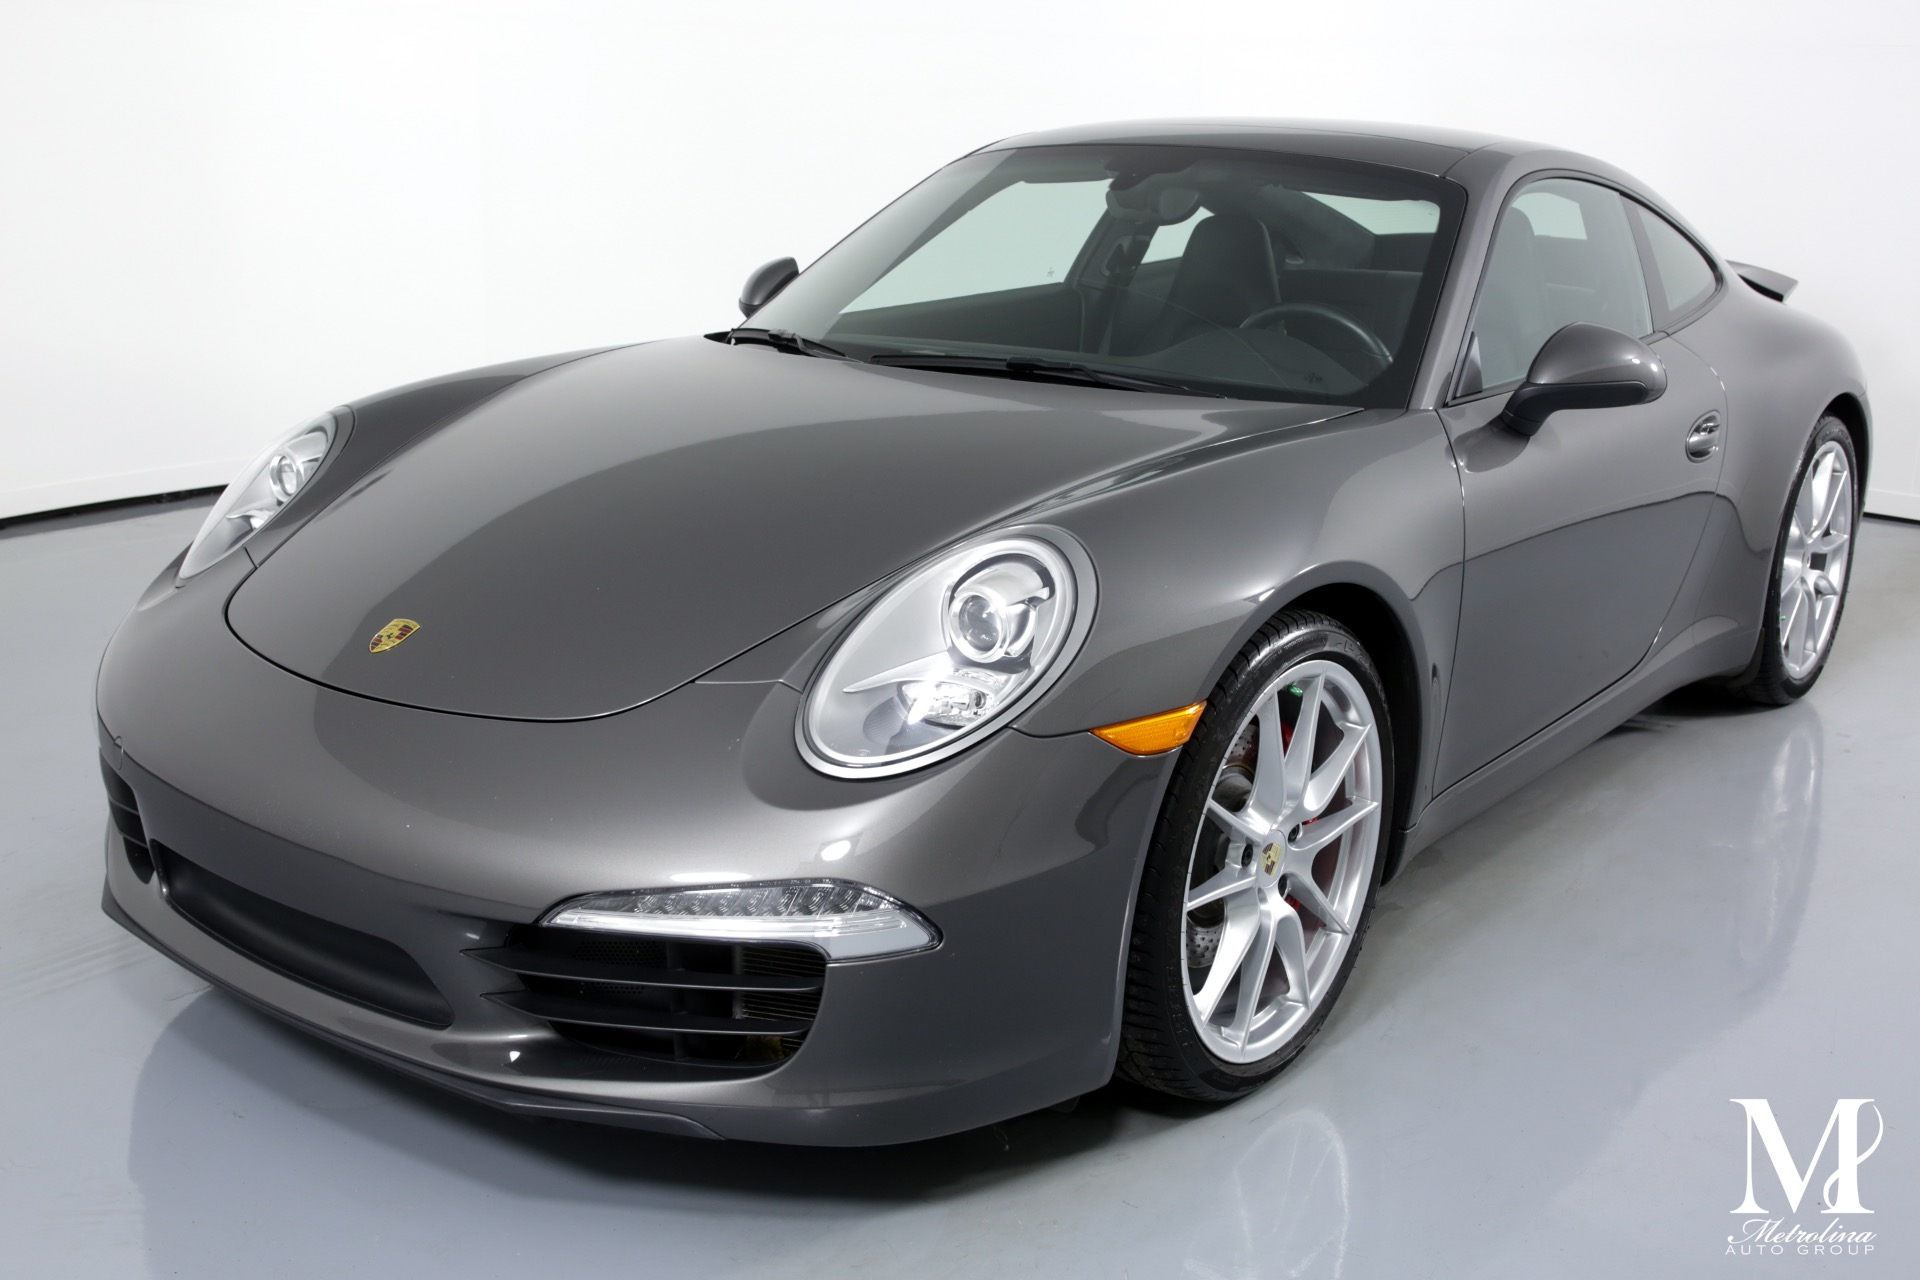 Used 2012 Porsche 911 Carrera S for sale Sold at Metrolina Auto Group in Charlotte NC 28217 - 4